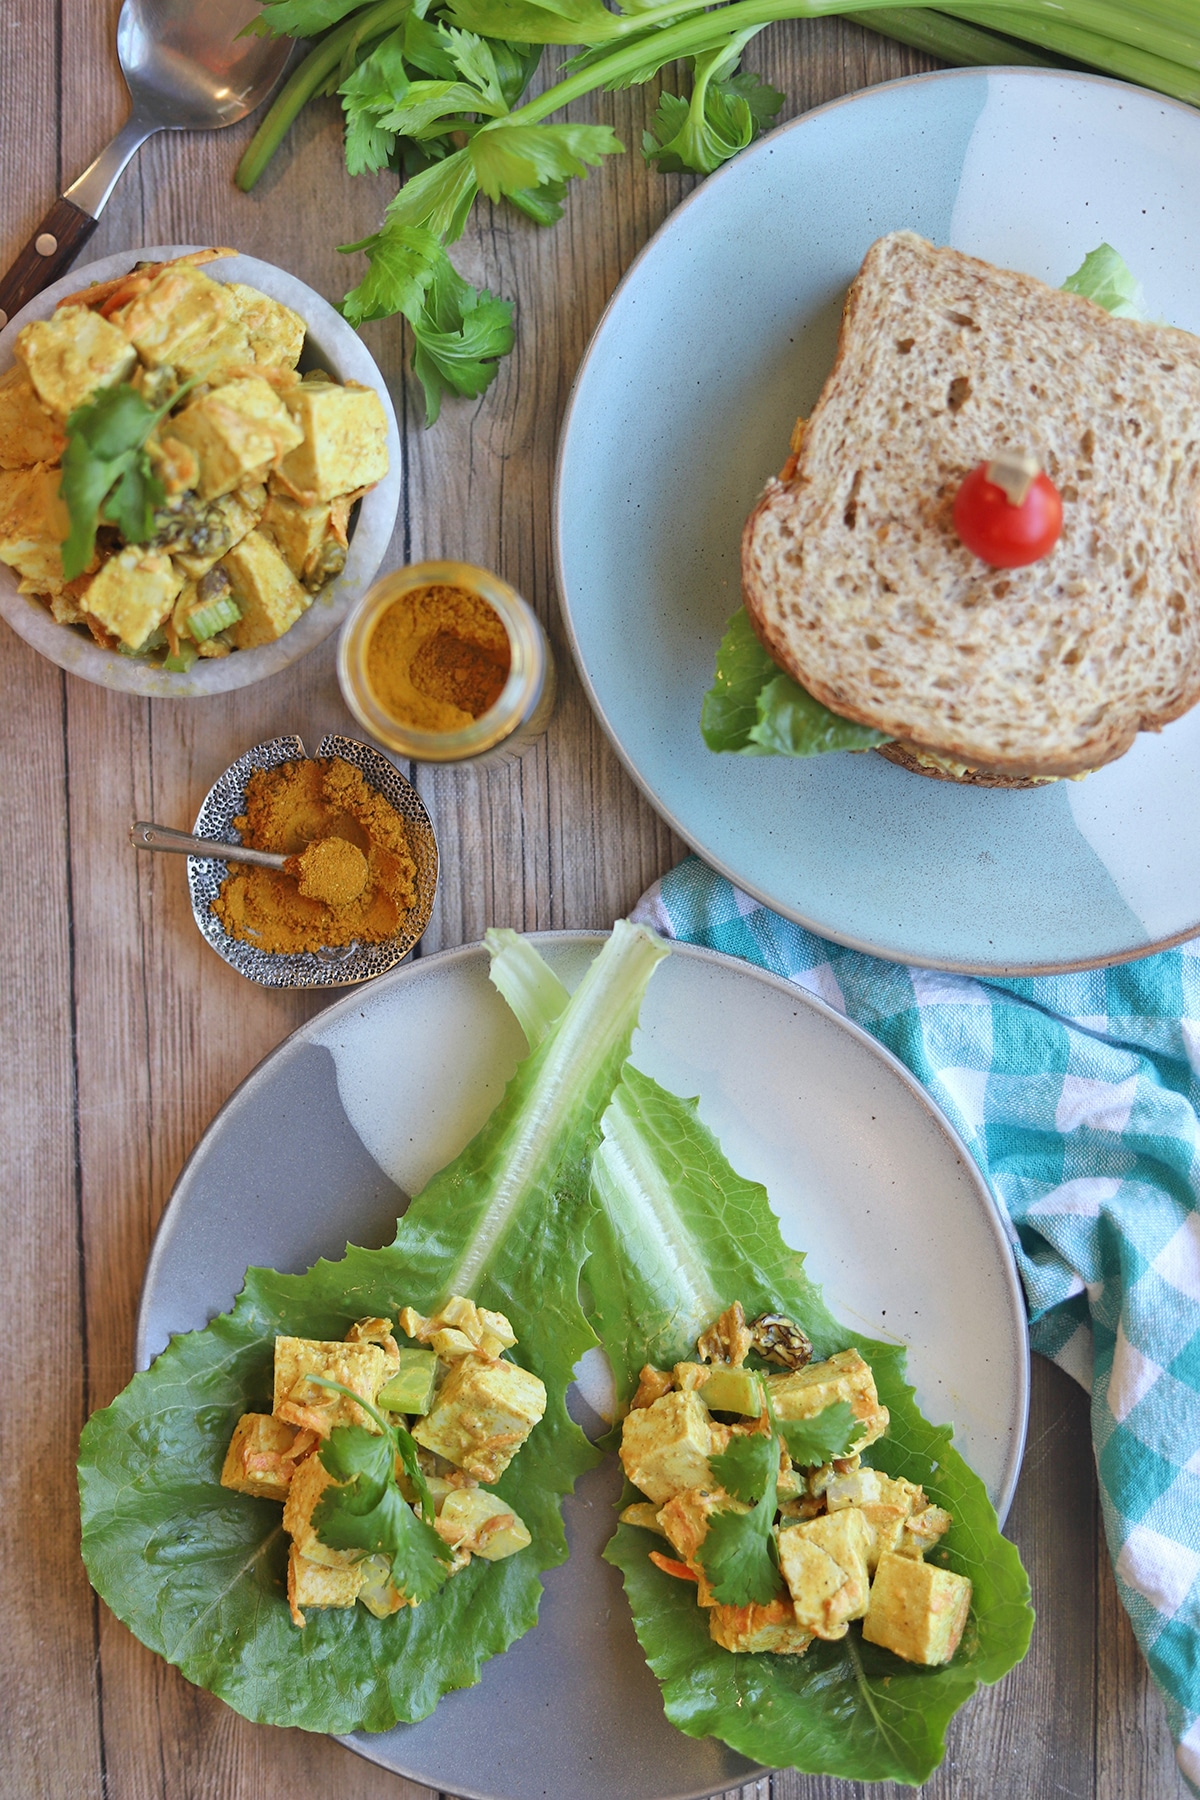 Overhead table with lettuce wraps and sandwich.